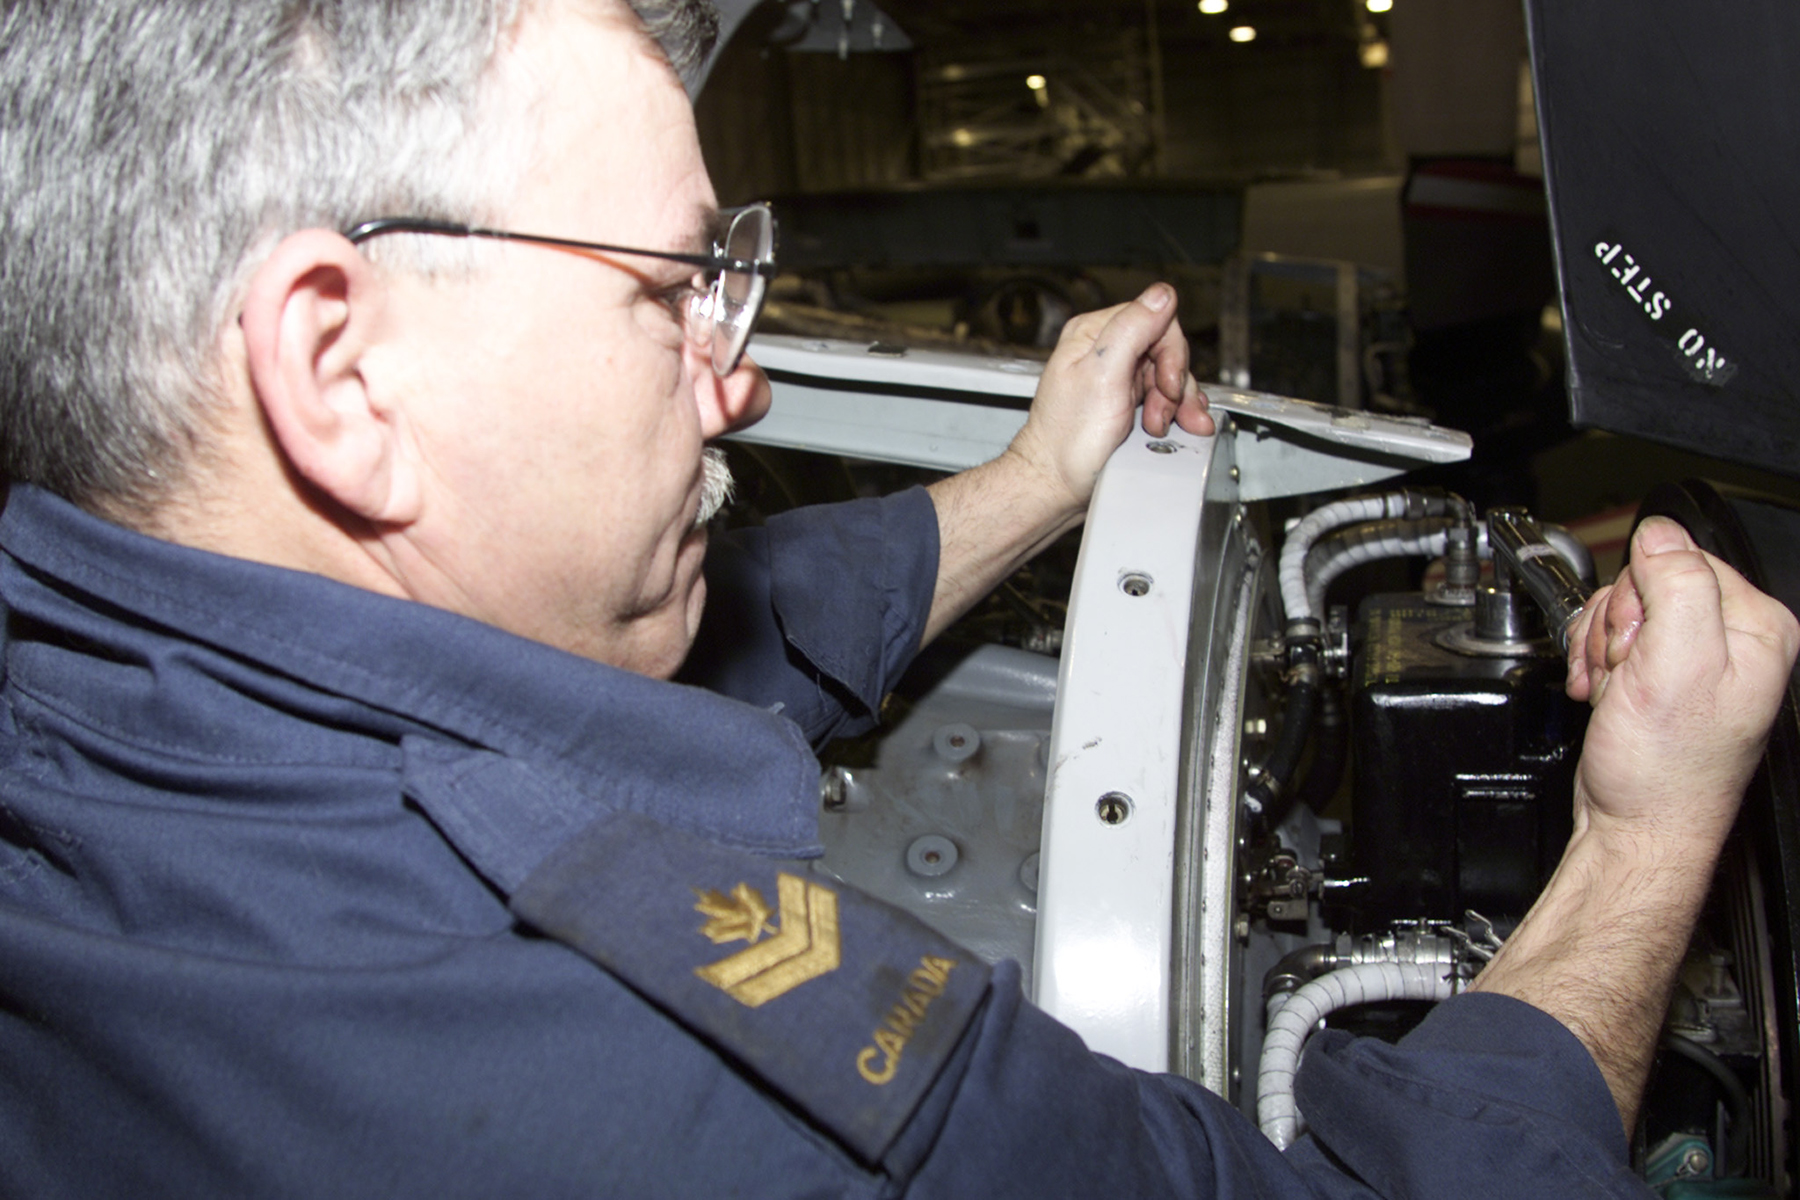 On February 14, 2001, Royal Canadian Air Force aviation technician Master Corporal Fred Masson, of the Air Reserve Augmentation Force attached to 413 Transport and Rescue Squadron at 14 Wing Greenwood, Nova Scotia, changes a propeller valve housing filter on one of the engines of a CC-130 Hercules aircraft as a routine part of the aircraft's inspection cycle. PHOTO: DND, IHD01-0066